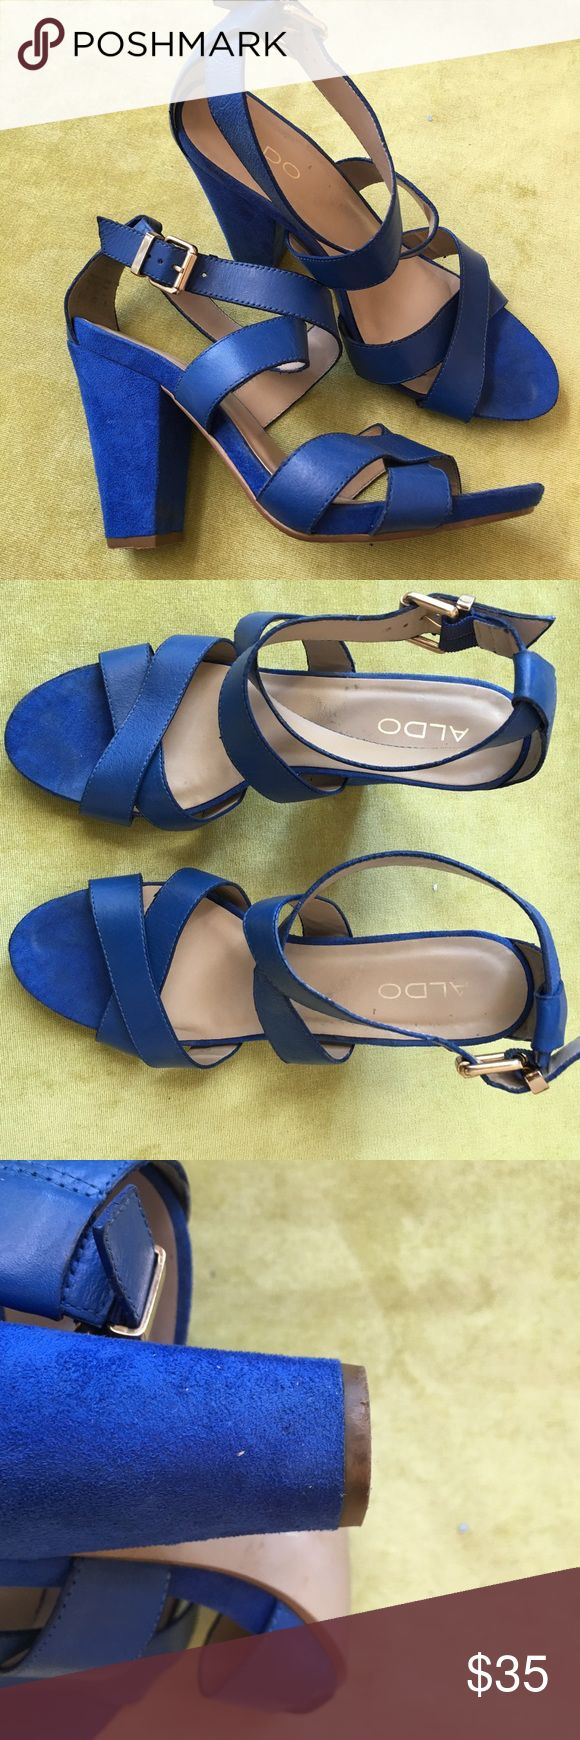 Aldo Heels Beautiful Aldo heels in a gorgeous blue color! Gently worn and perfect for many occasions! Aldo Shoes Heels